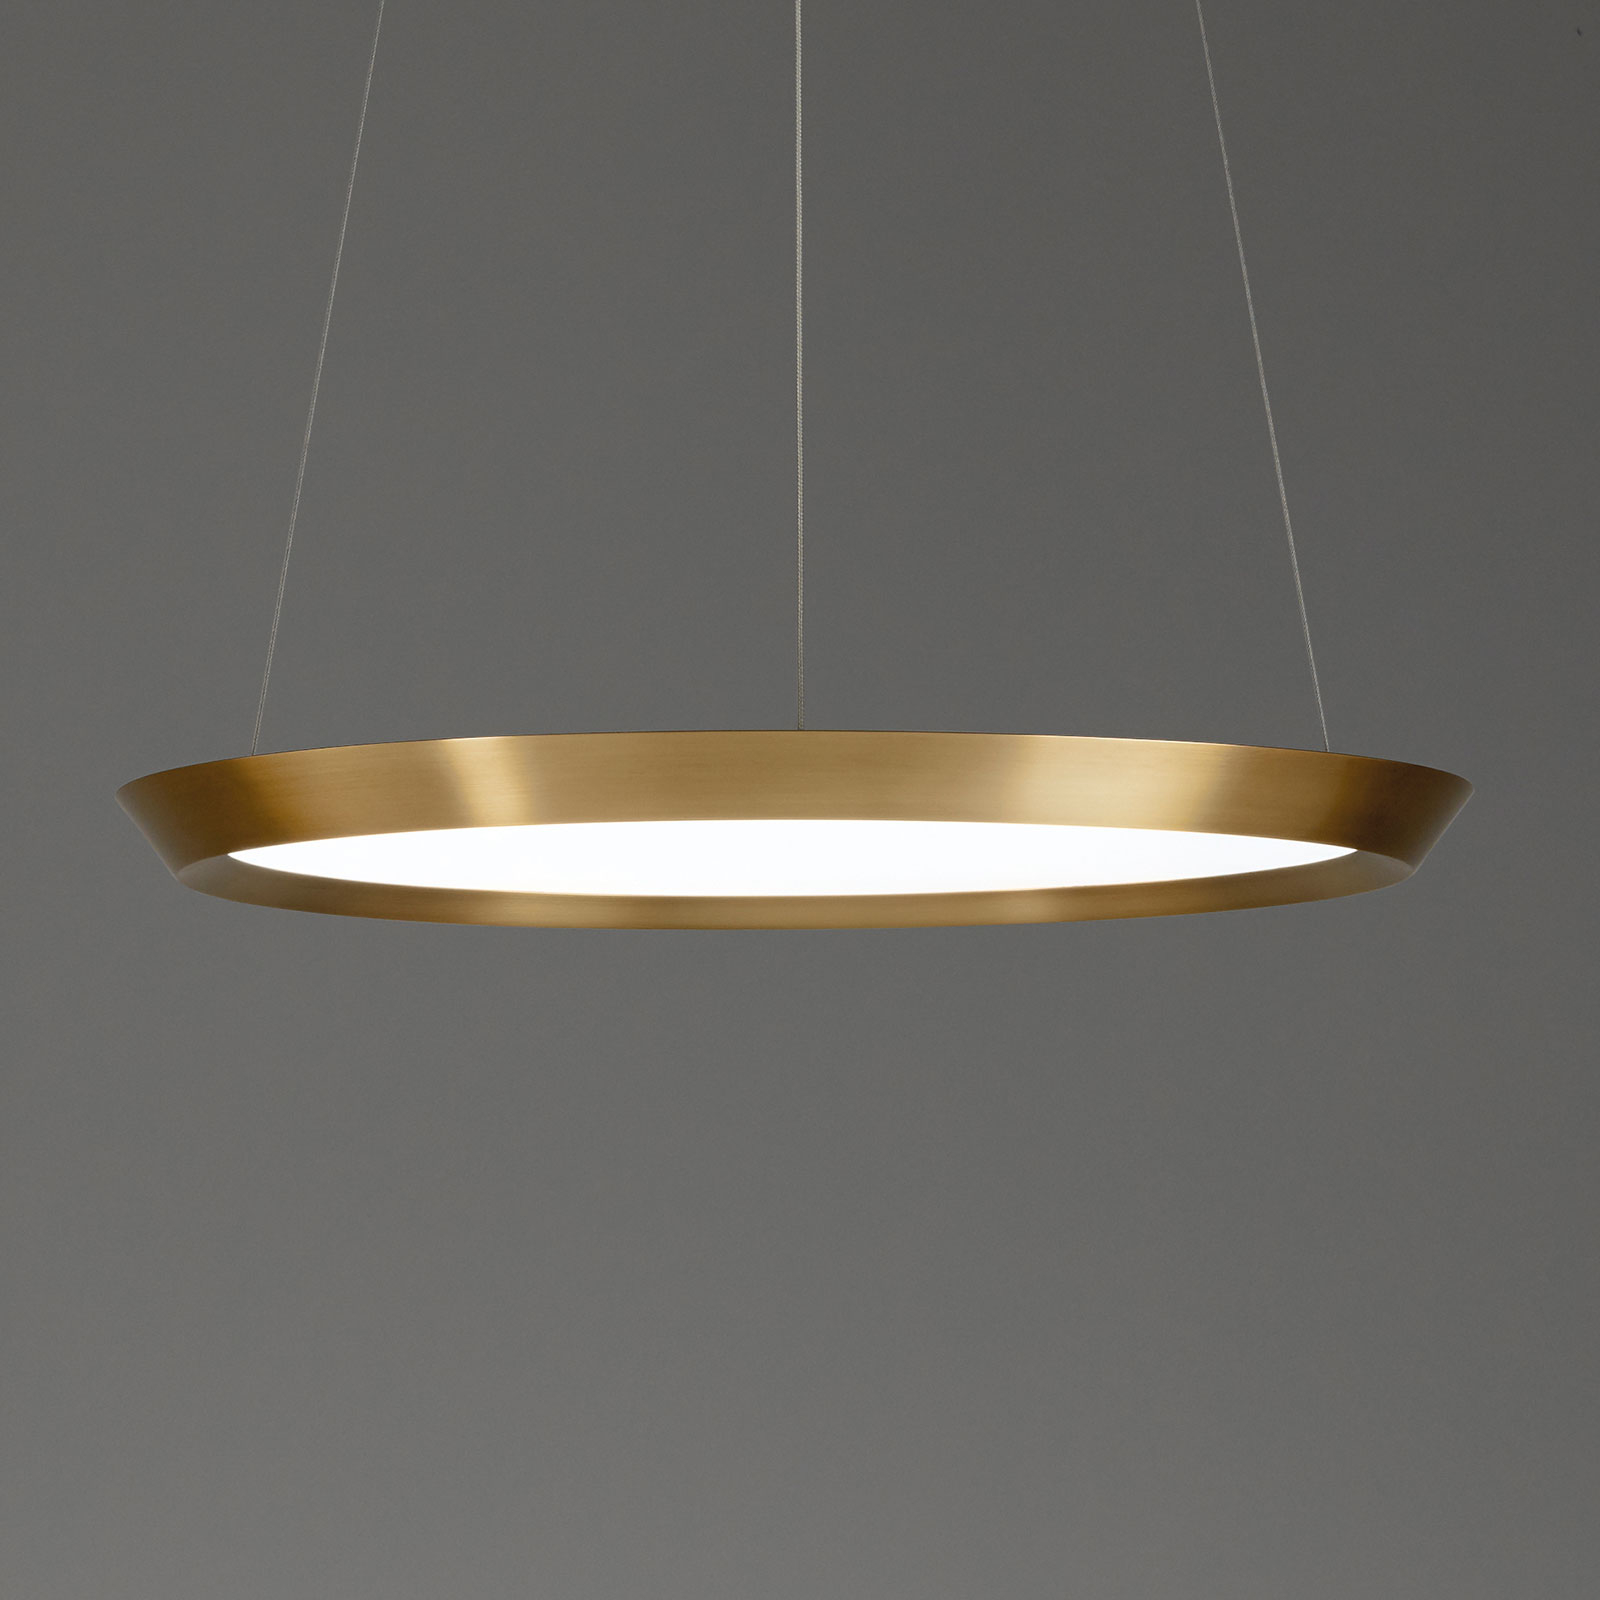 Grok Saturn LED-Hängelampe messing satin, Ø 60 cm